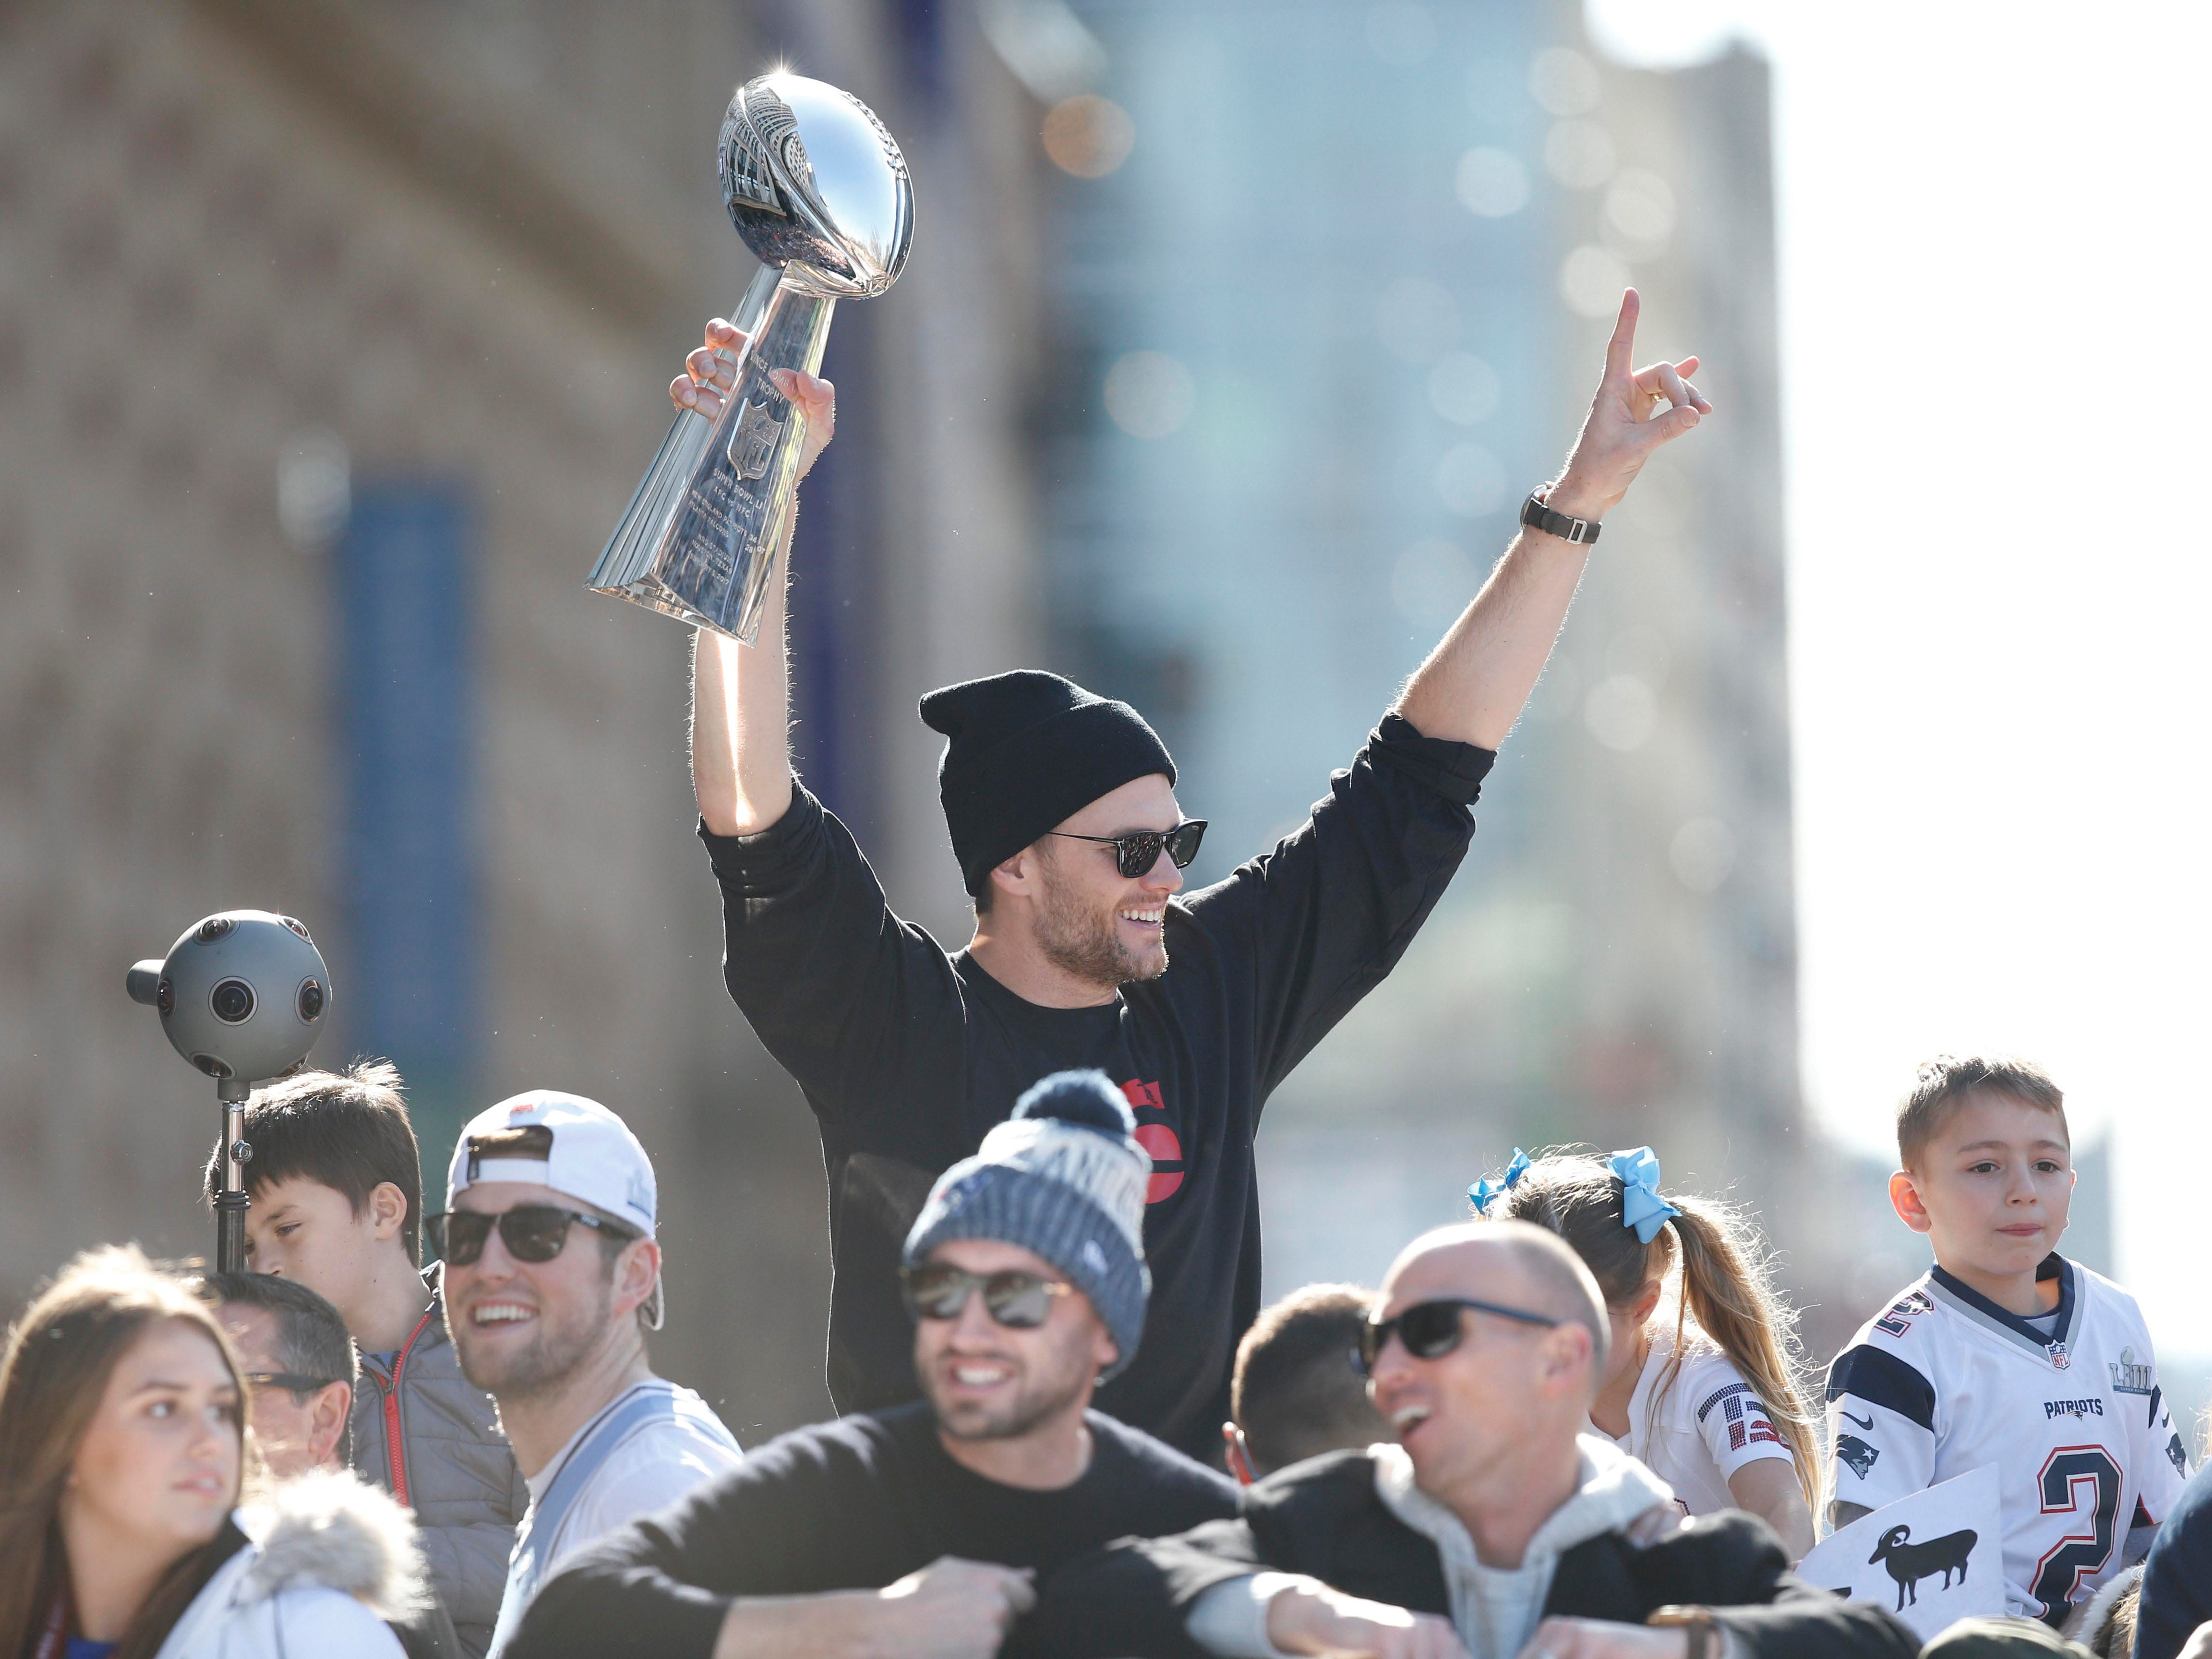 1. Patriots (7): What's left to say? Definitively the greatest dynasty in NFL history, even on heels of subpar (by their standards) regular season. Now in a race with Pittsburgh to be first seven-time Super Bowl champions.